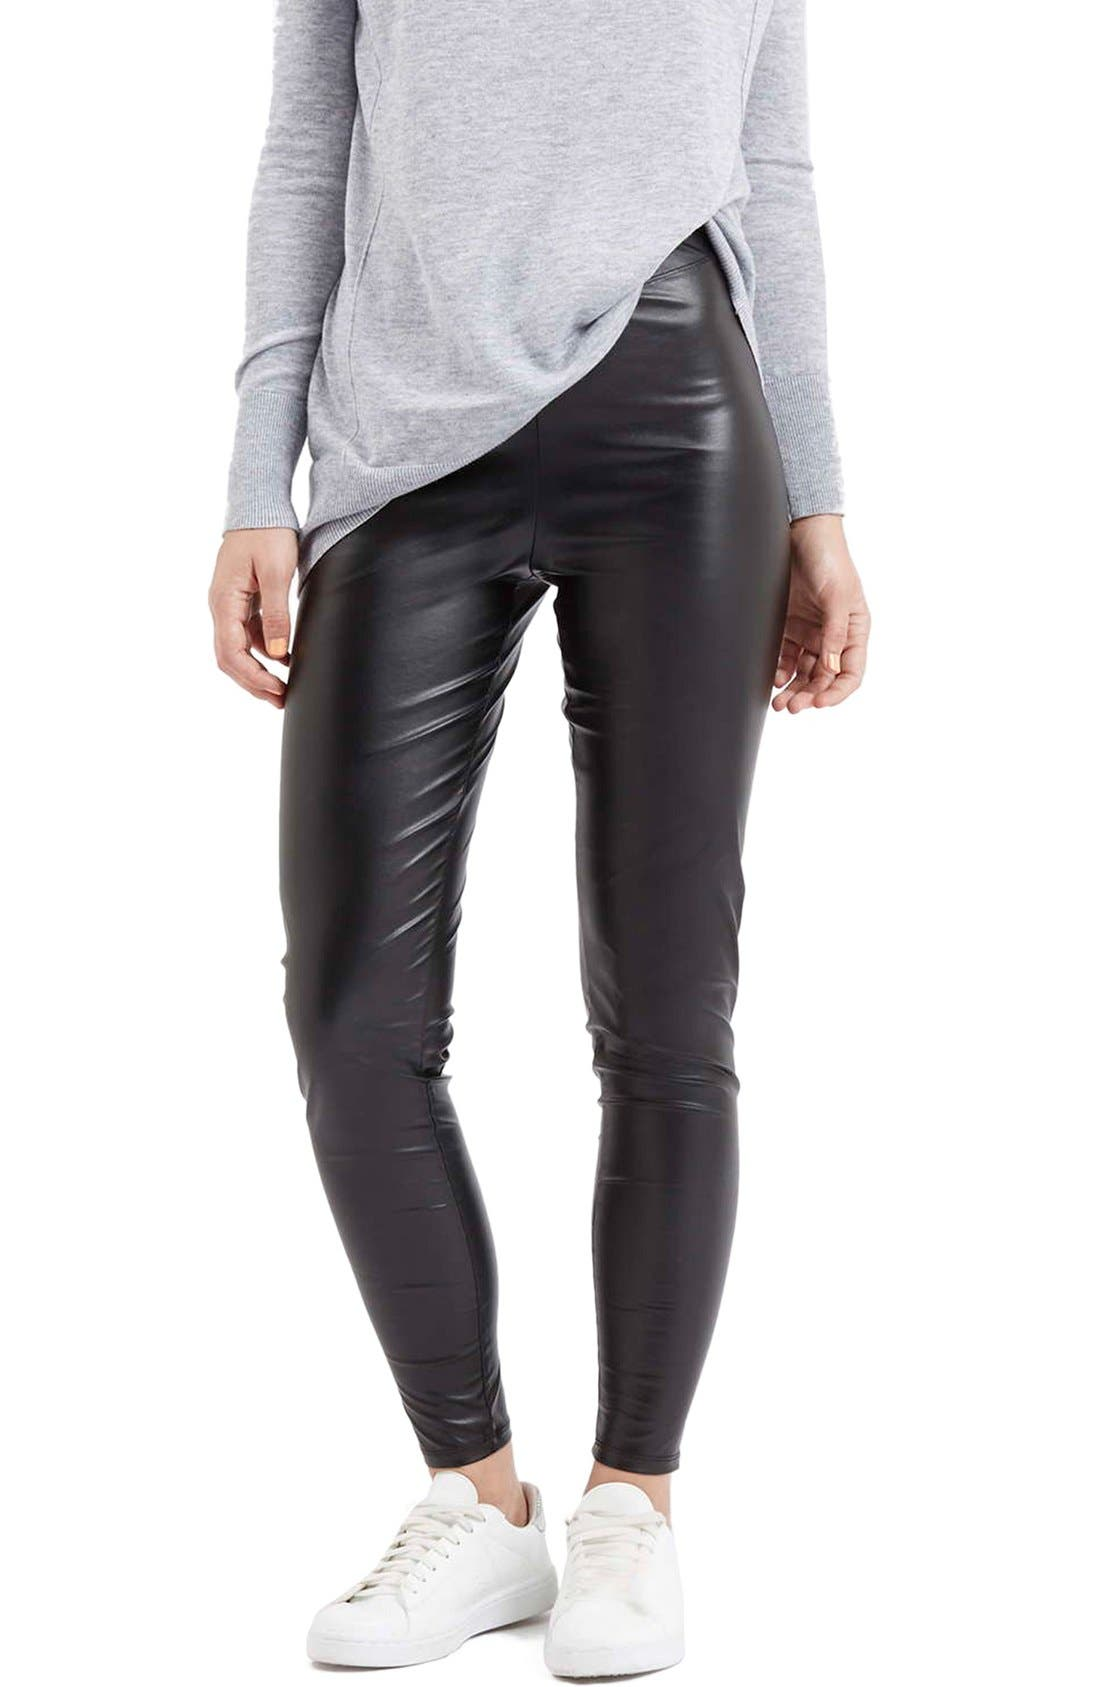 'Wet Look' Leggings,                             Main thumbnail 1, color,                             001